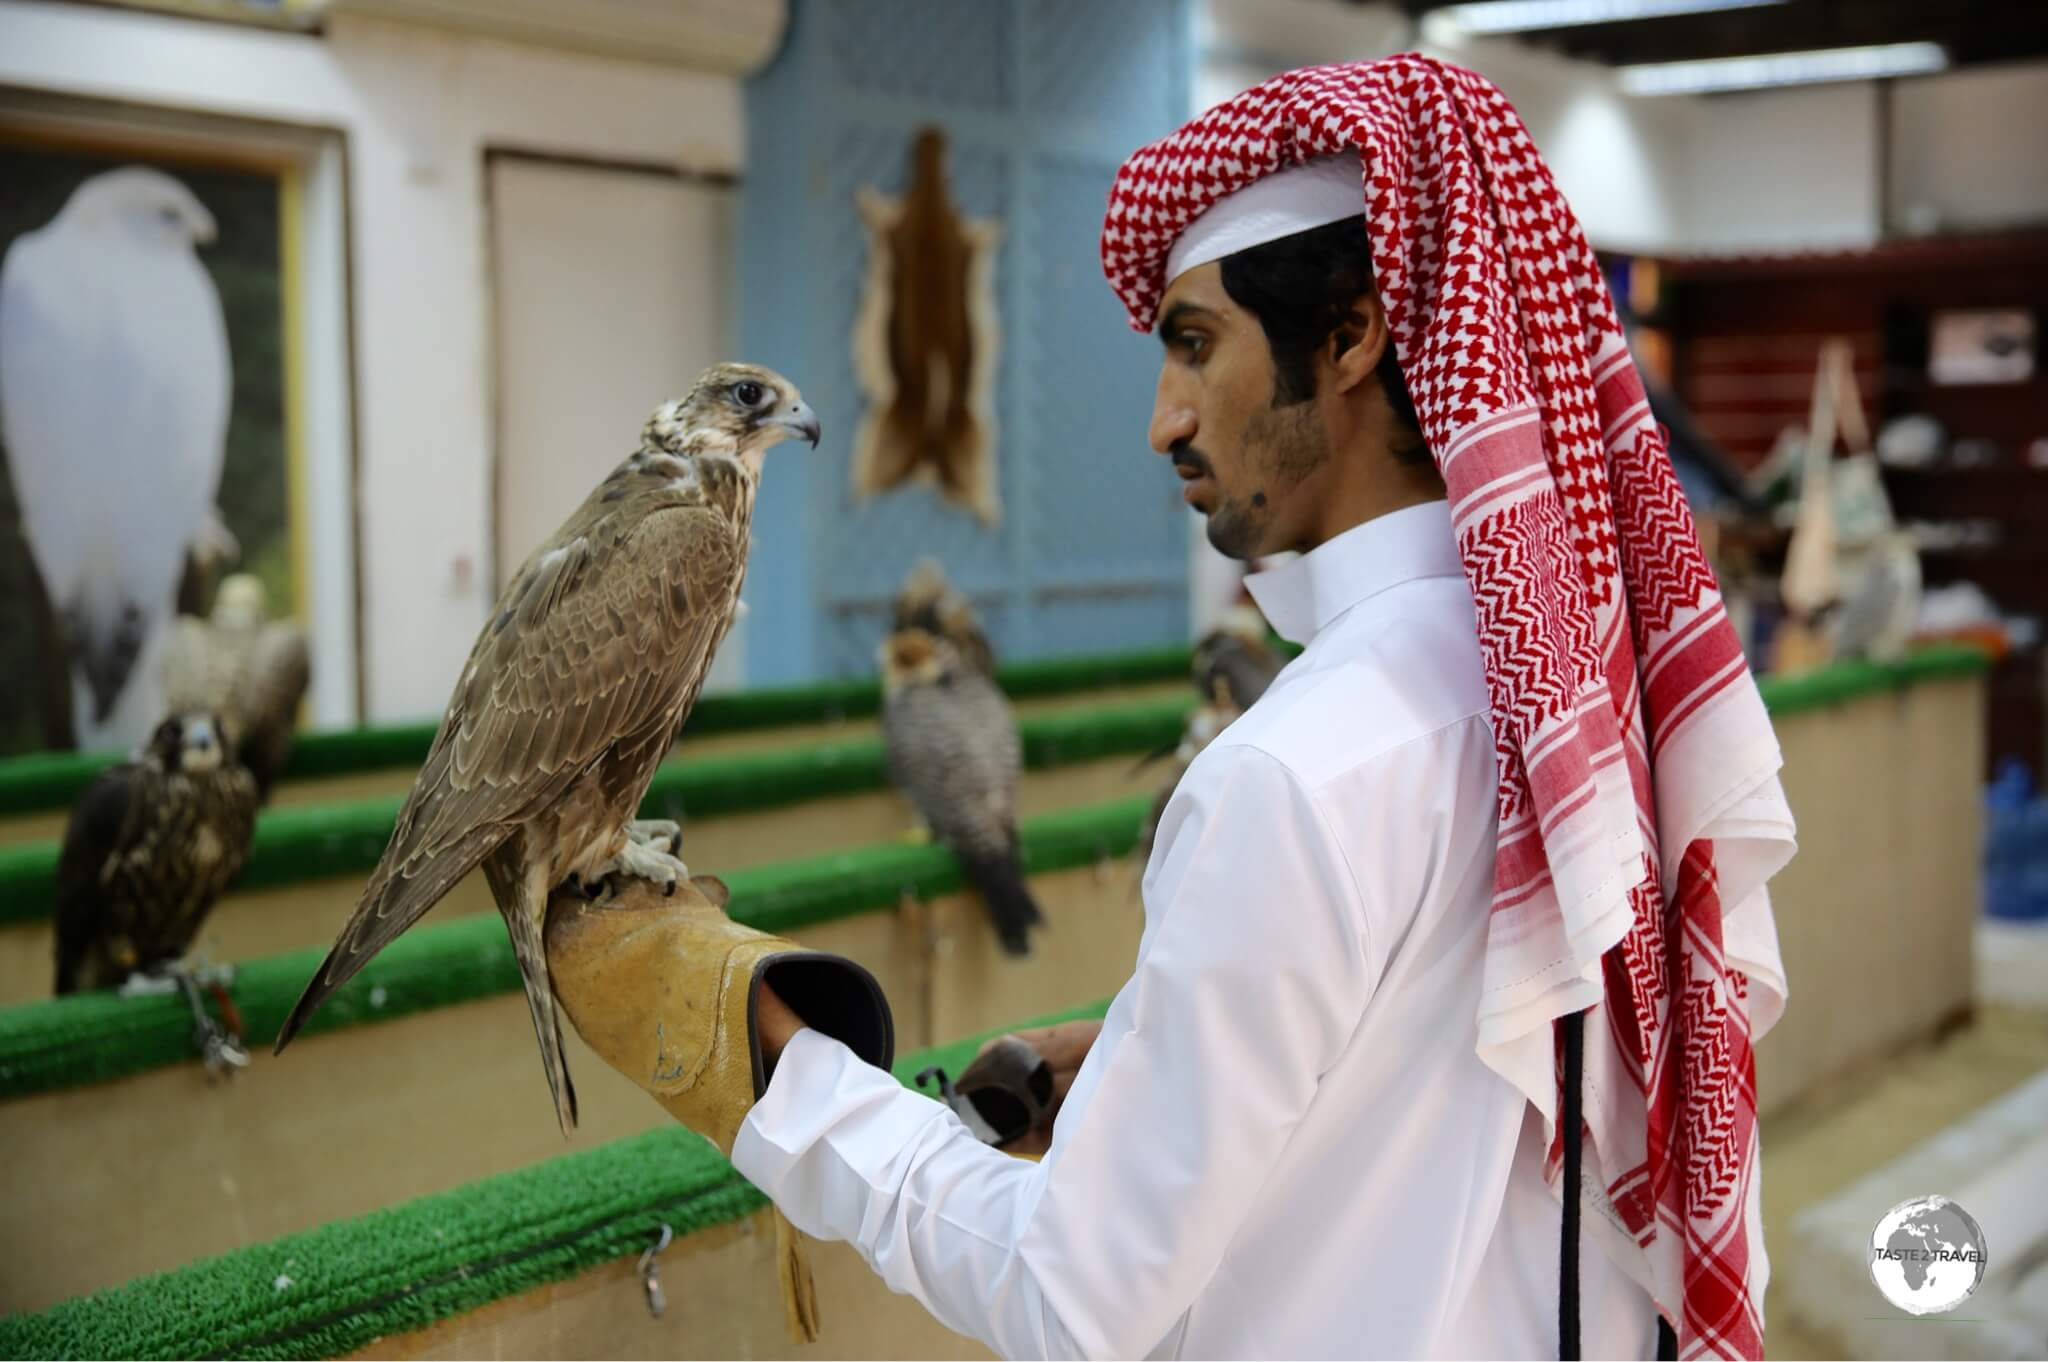 A customer inspects a Falcon prior to purchase. Falconry is serious business in Qatar!